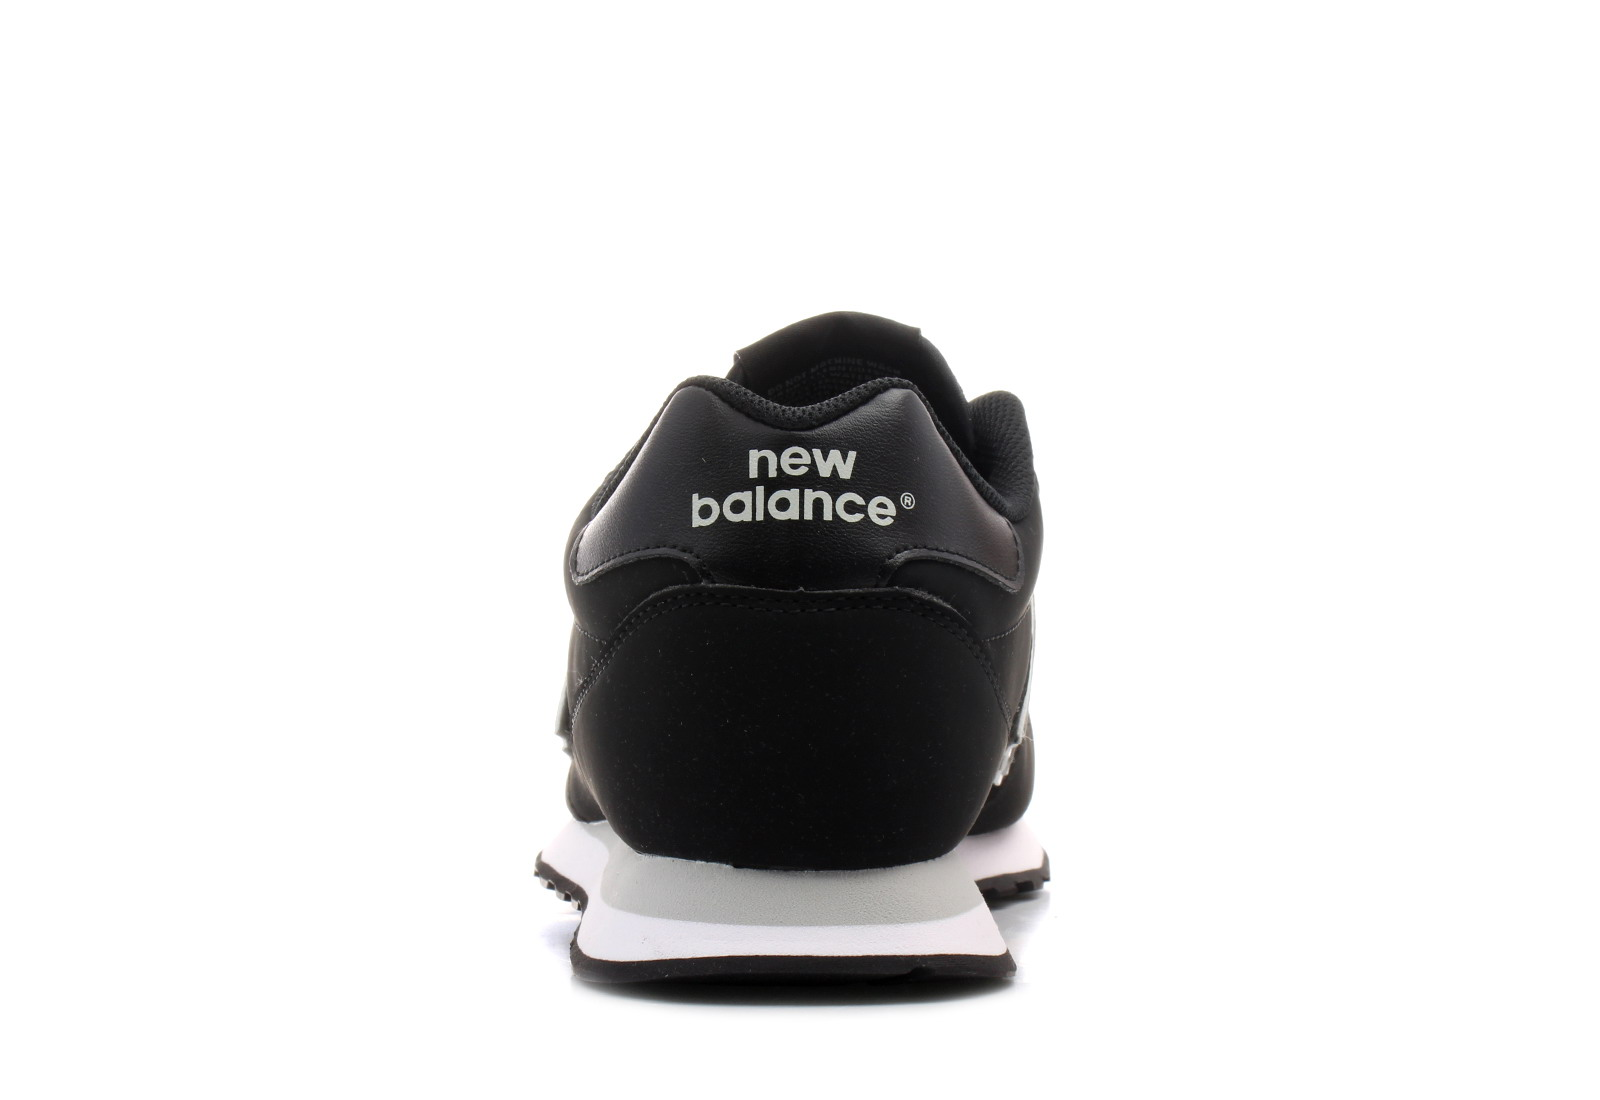 New Balance Shoes - Gm500 - GM500BKG - Online shop for sneakers ... 77f28da3175